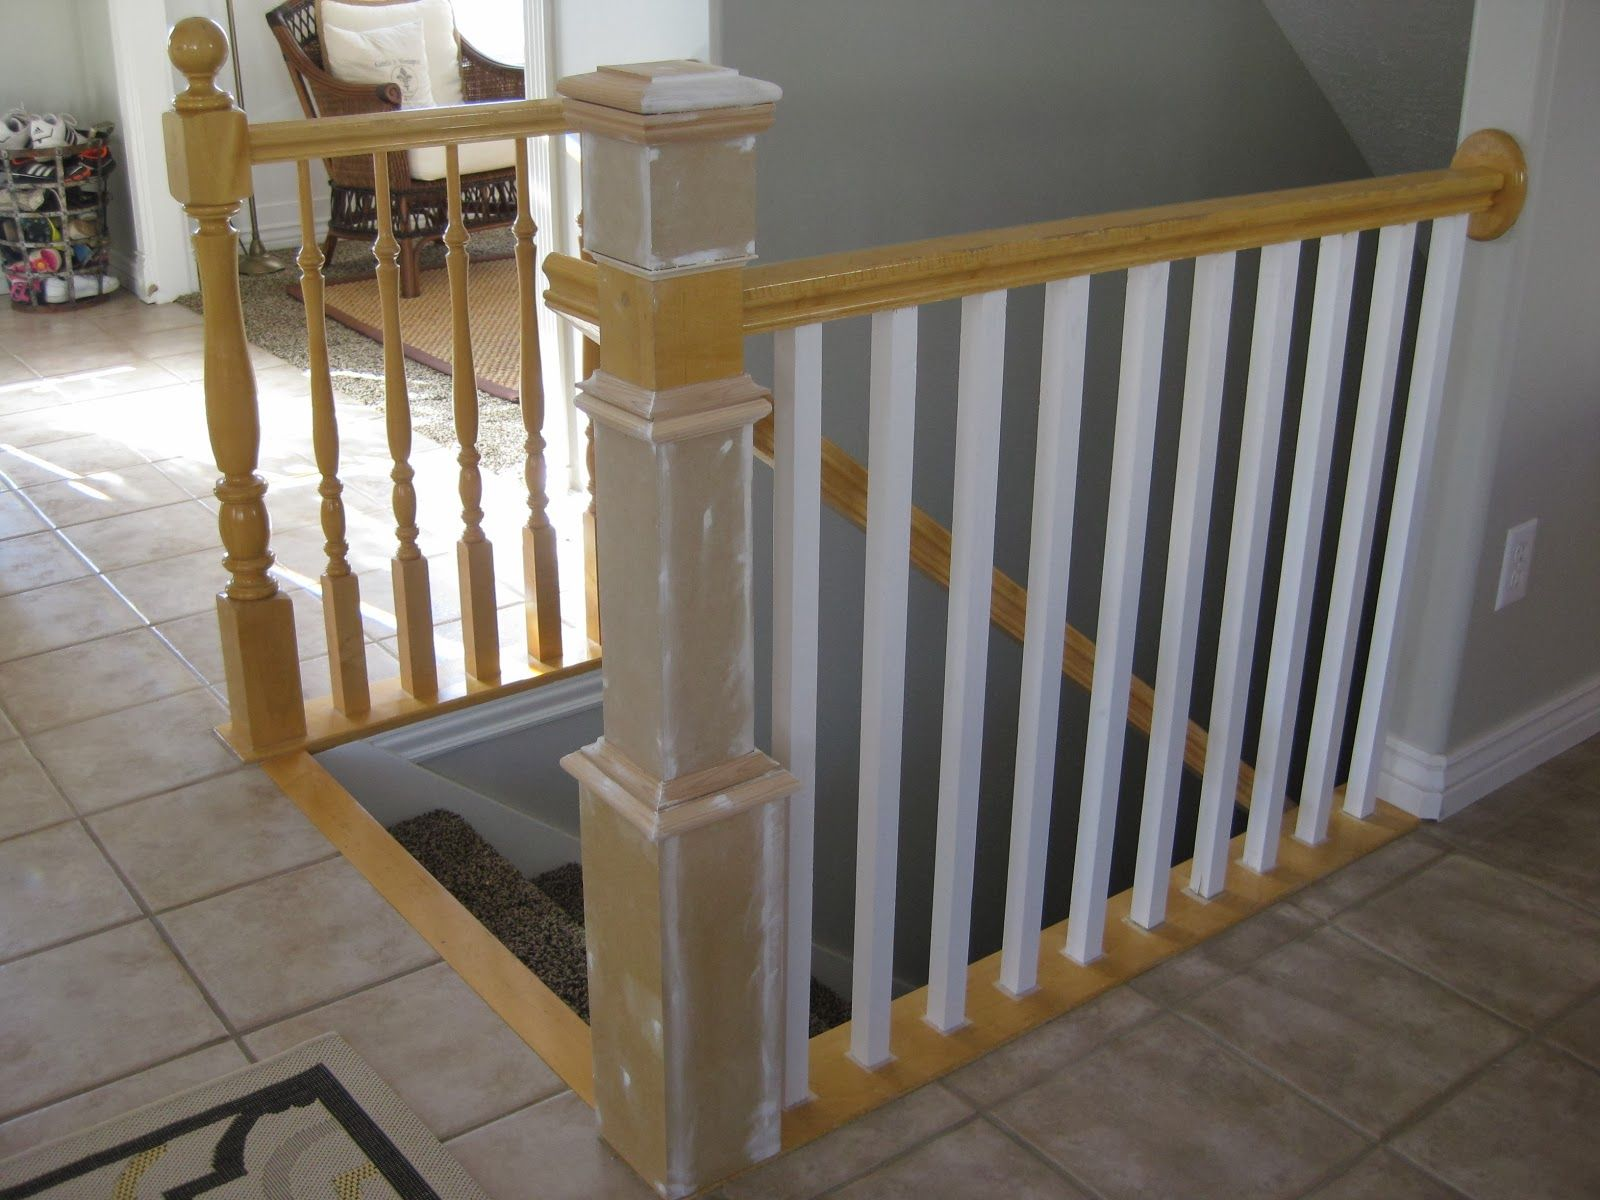 Replace Stair Banister Spindles And Newel Post Diy Tda | Installing Newel Post And Spindles | Stair Treads | Stair Railings | Stair Banister | Box Newel | Staircase